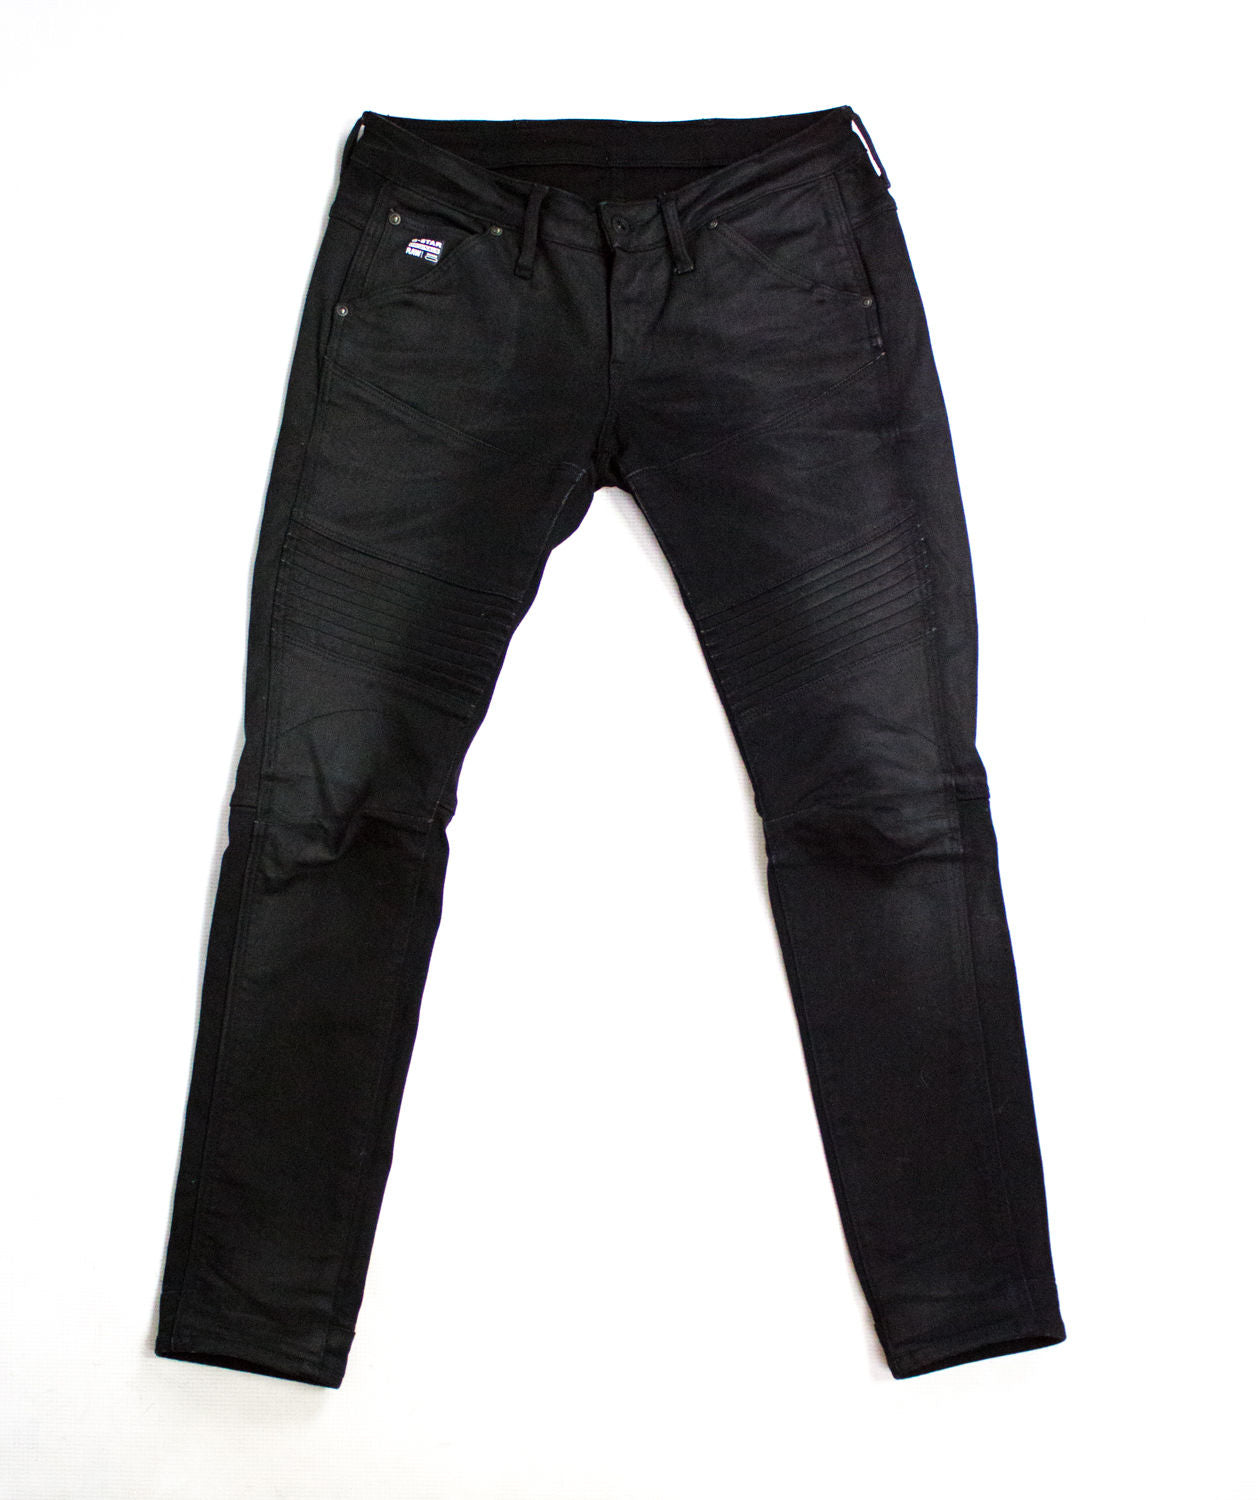 G-STAR SLIM TAPERED SKINNY BLACK COATED JEANS, 27/30 - secondfirst